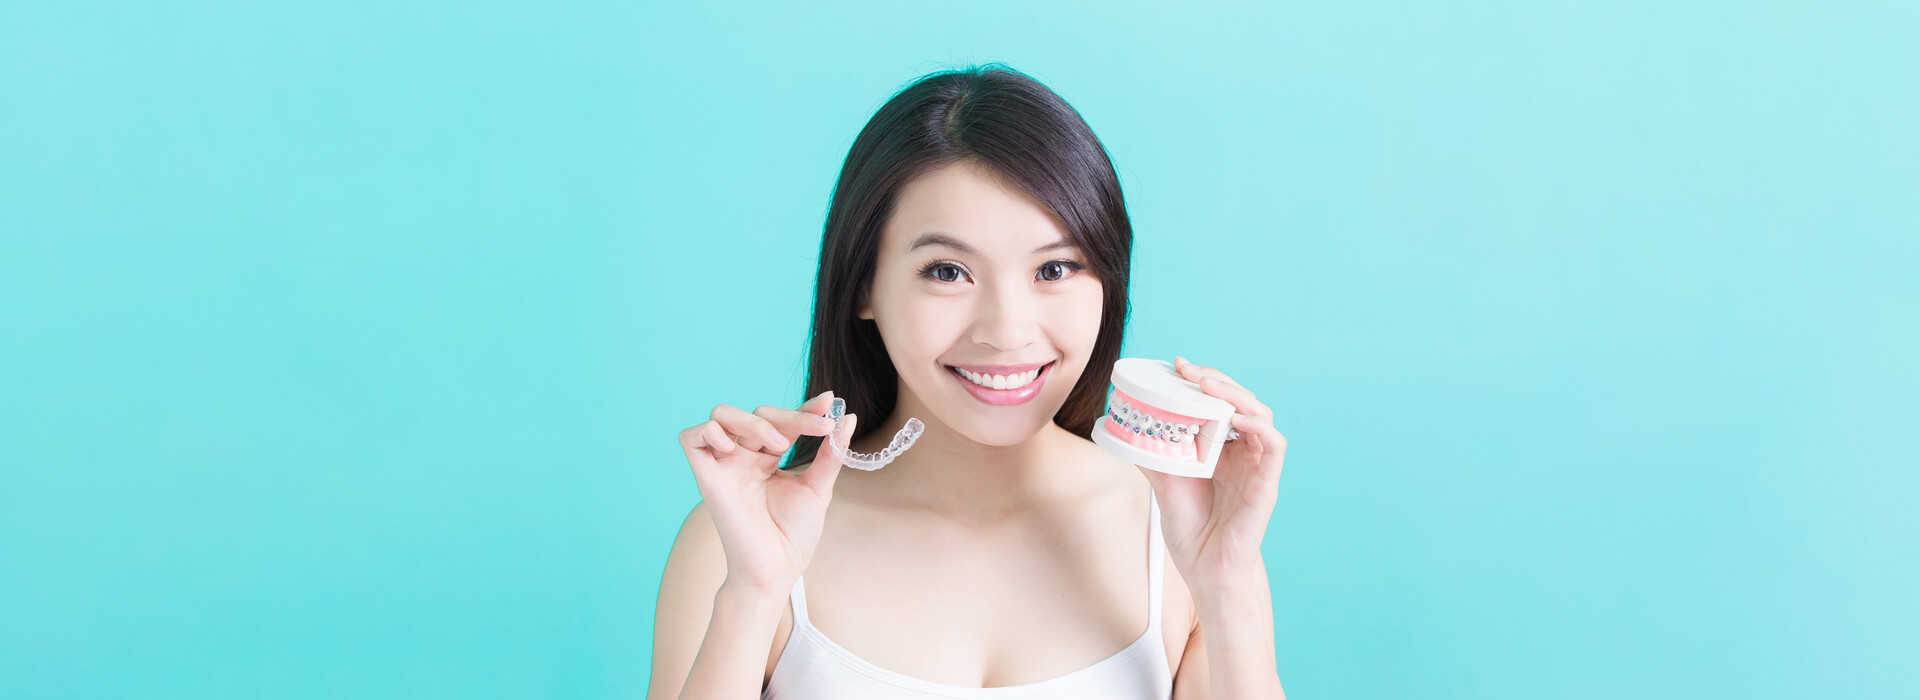 Invisalign Vs. Fastbraces: Which Is Better For You?